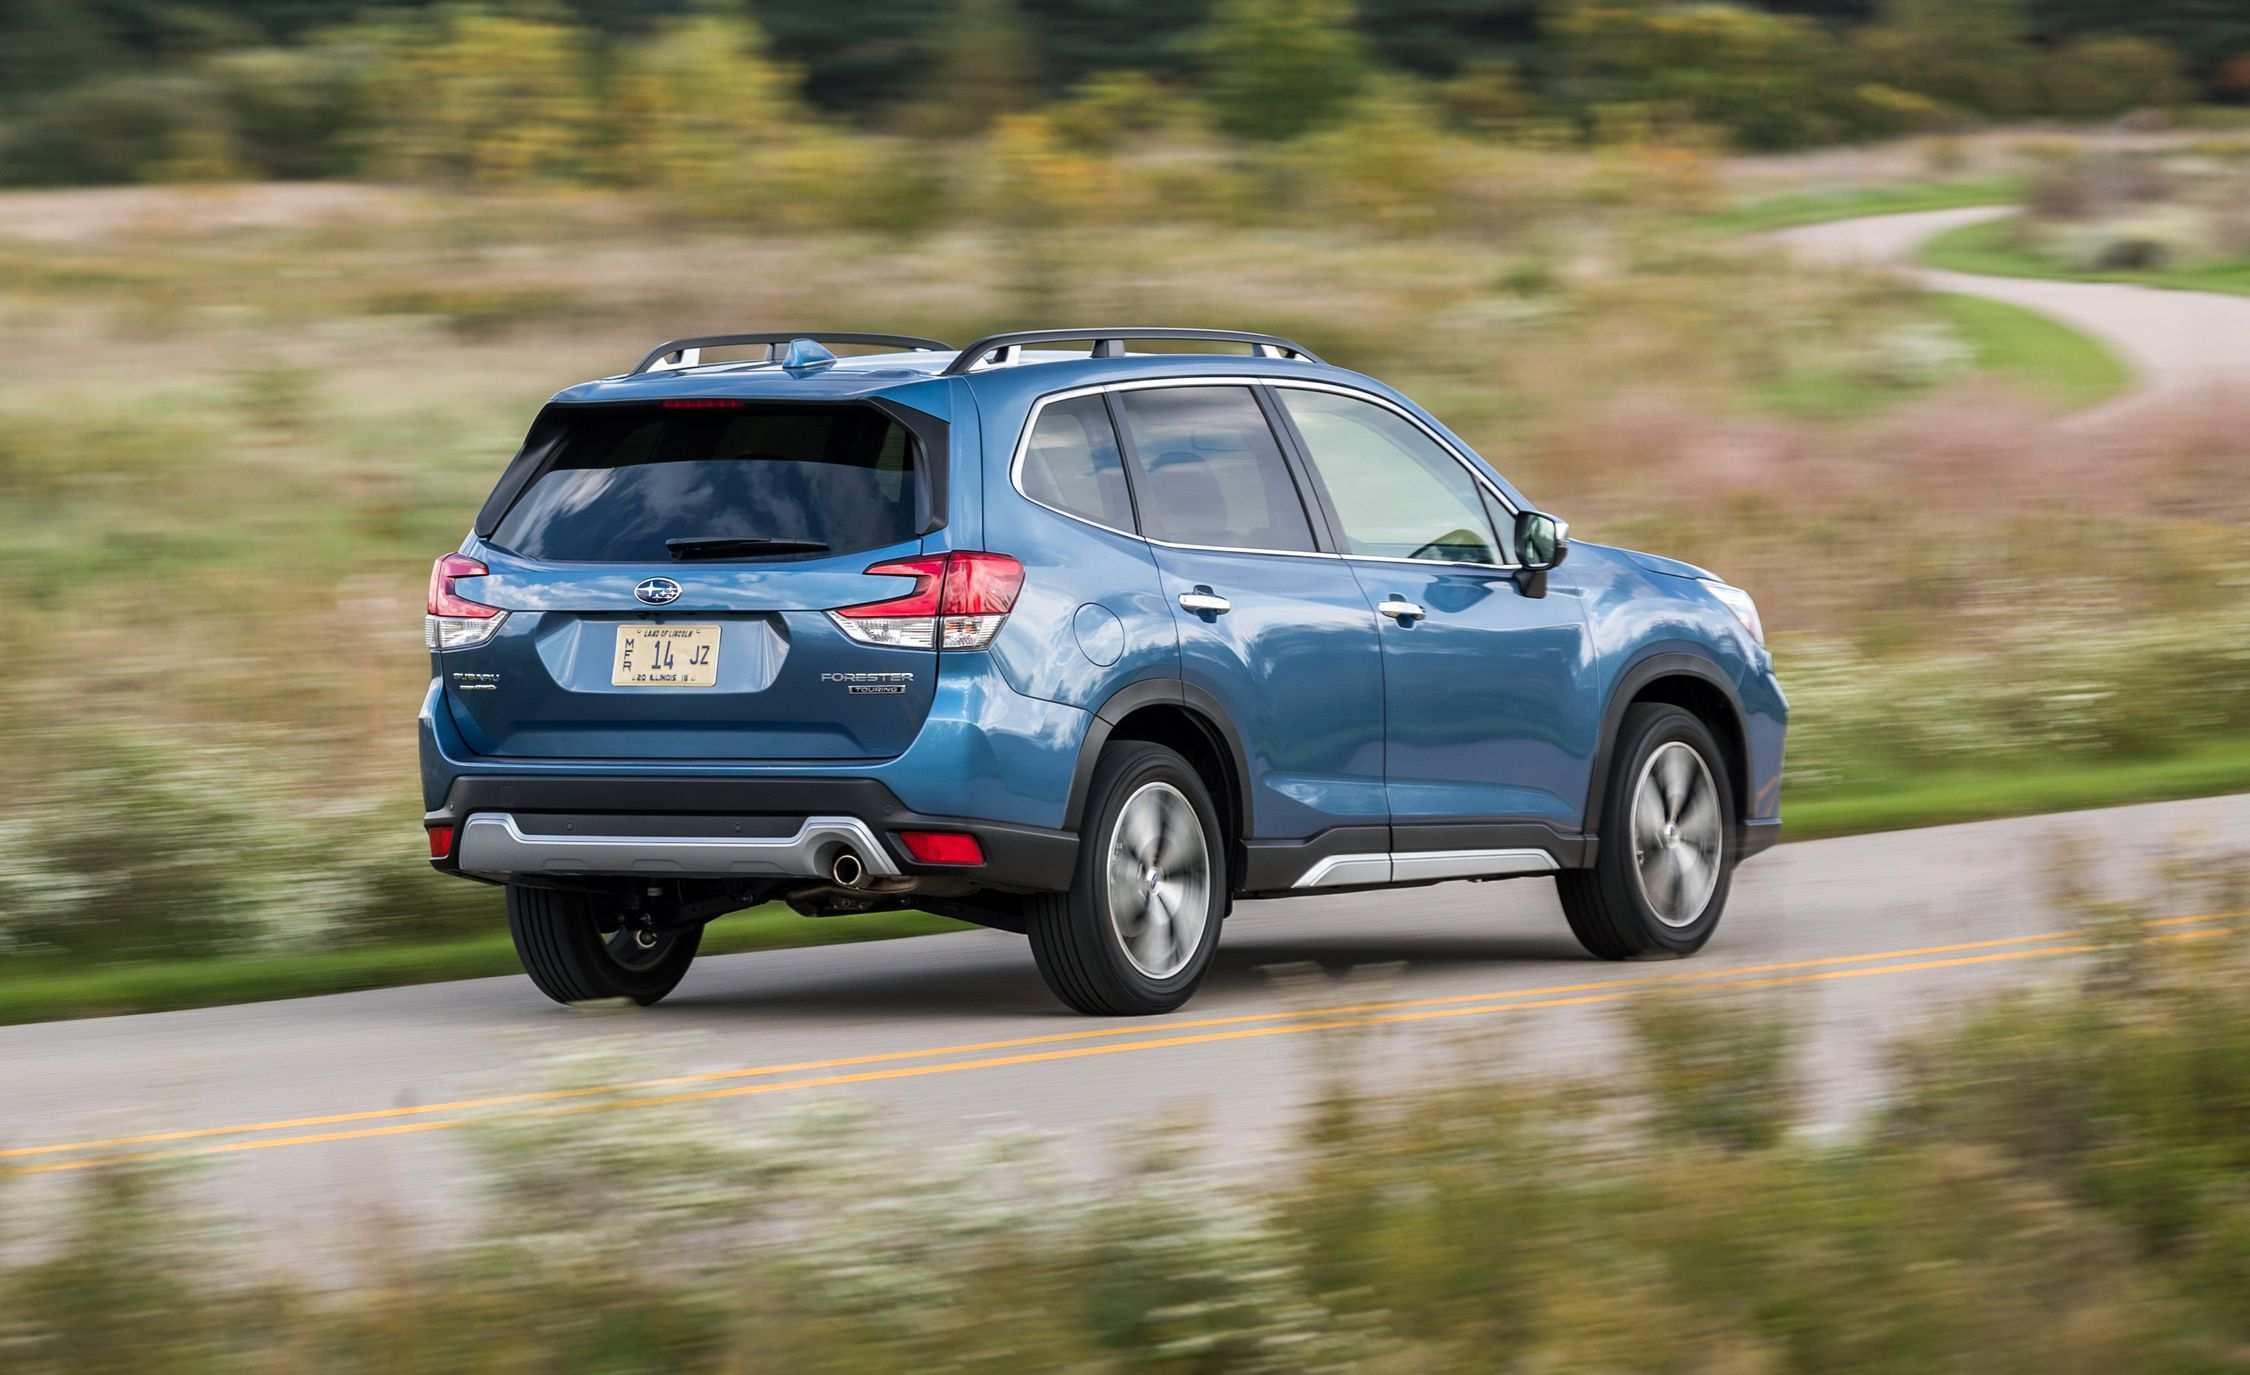 53 The Best Next Generation Subaru Forester 2019 Configurations